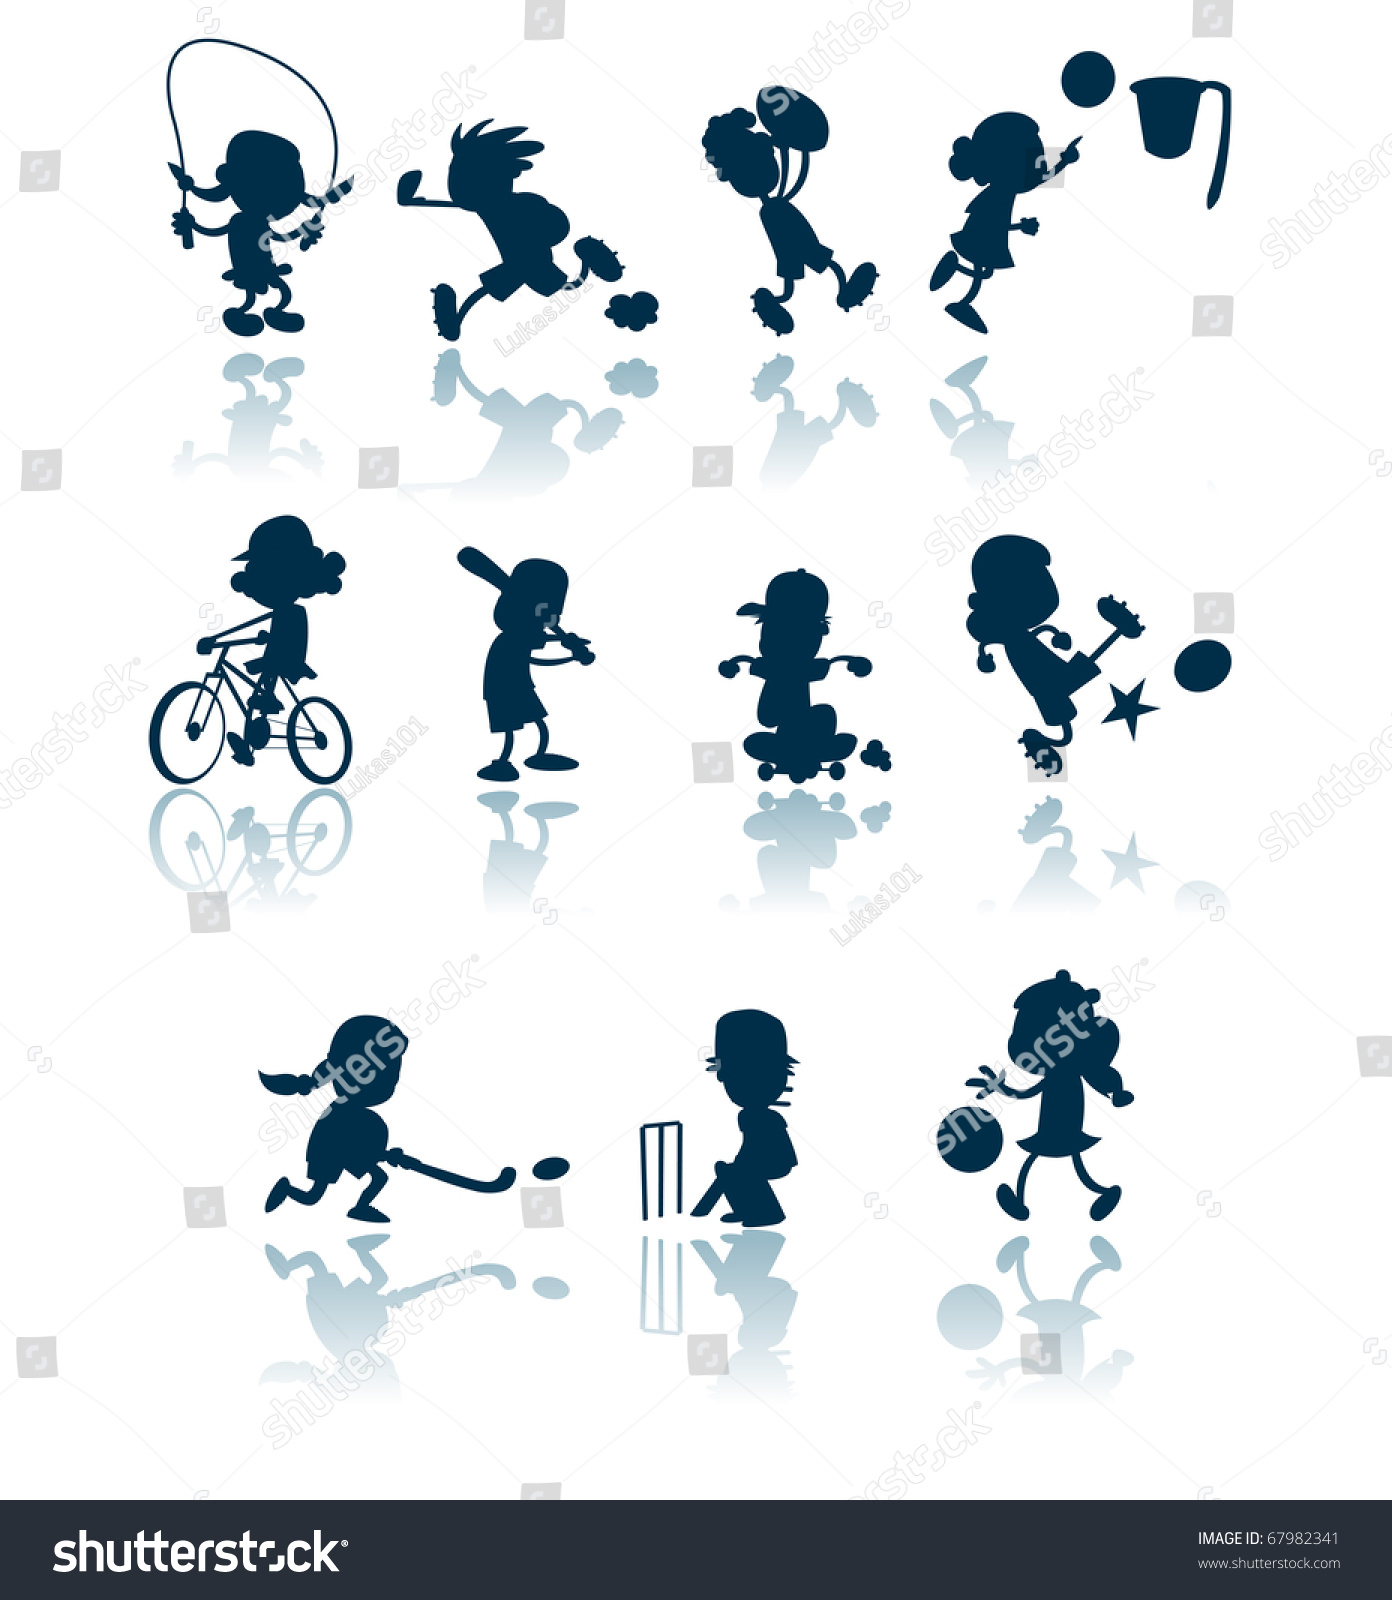 collection silhouettes cutouts children engaged various stock